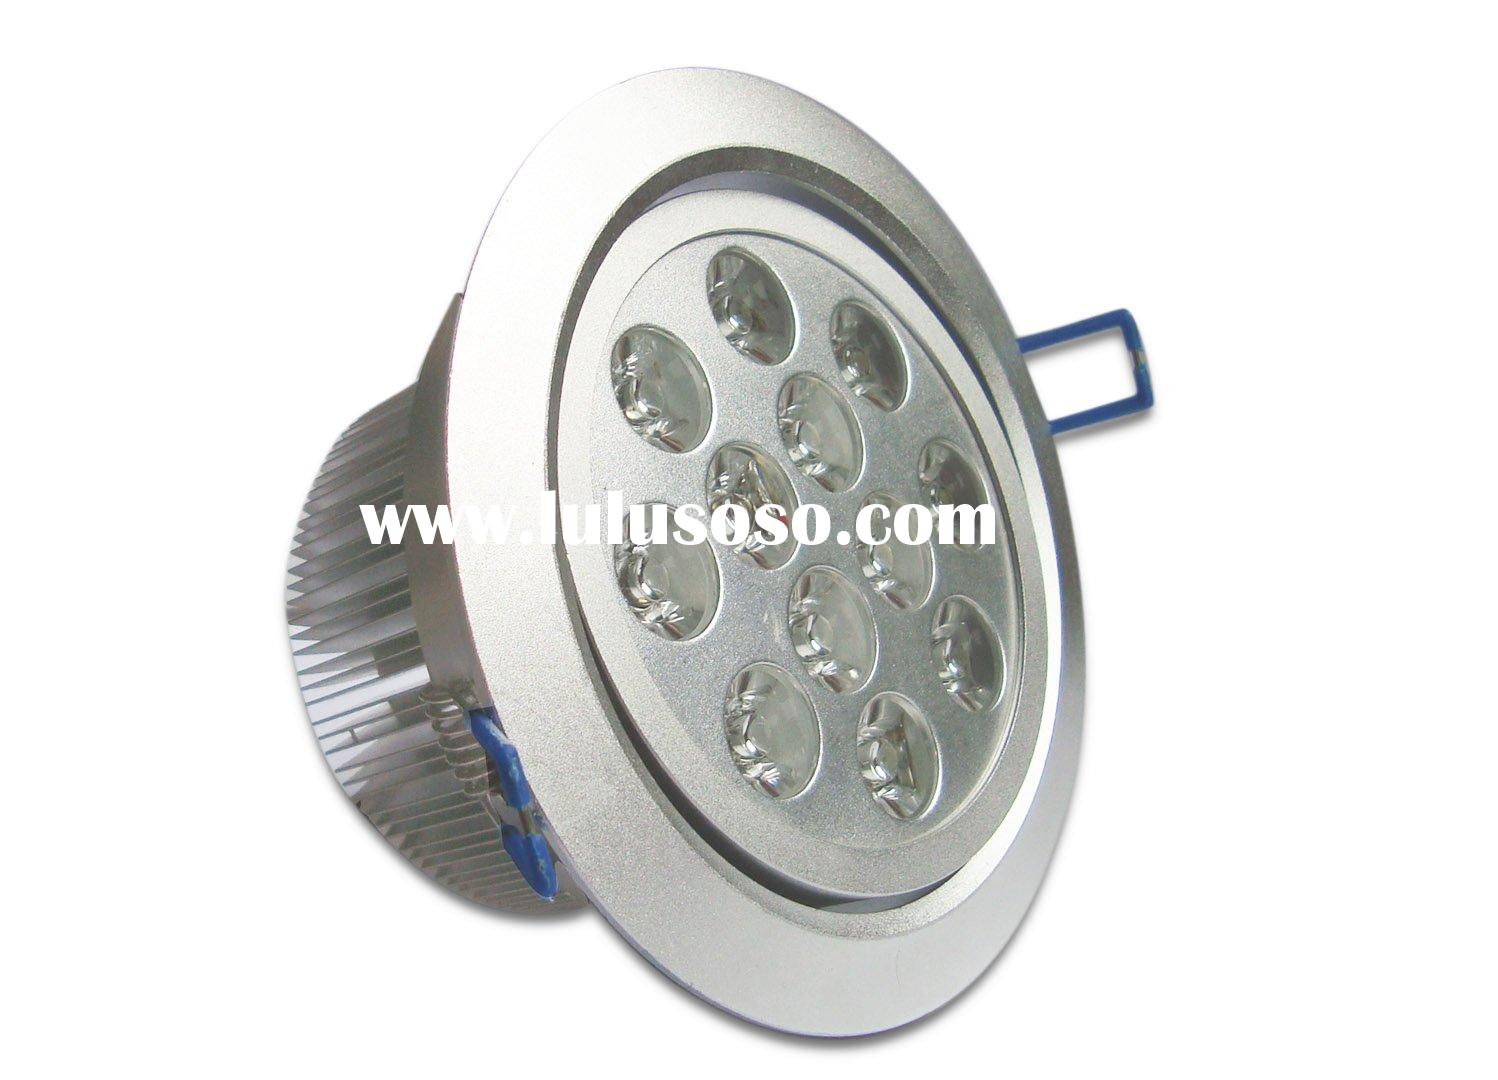 12*1Watt Recessed LED Downlight,equivalent to 100 Watt incandescent bulb